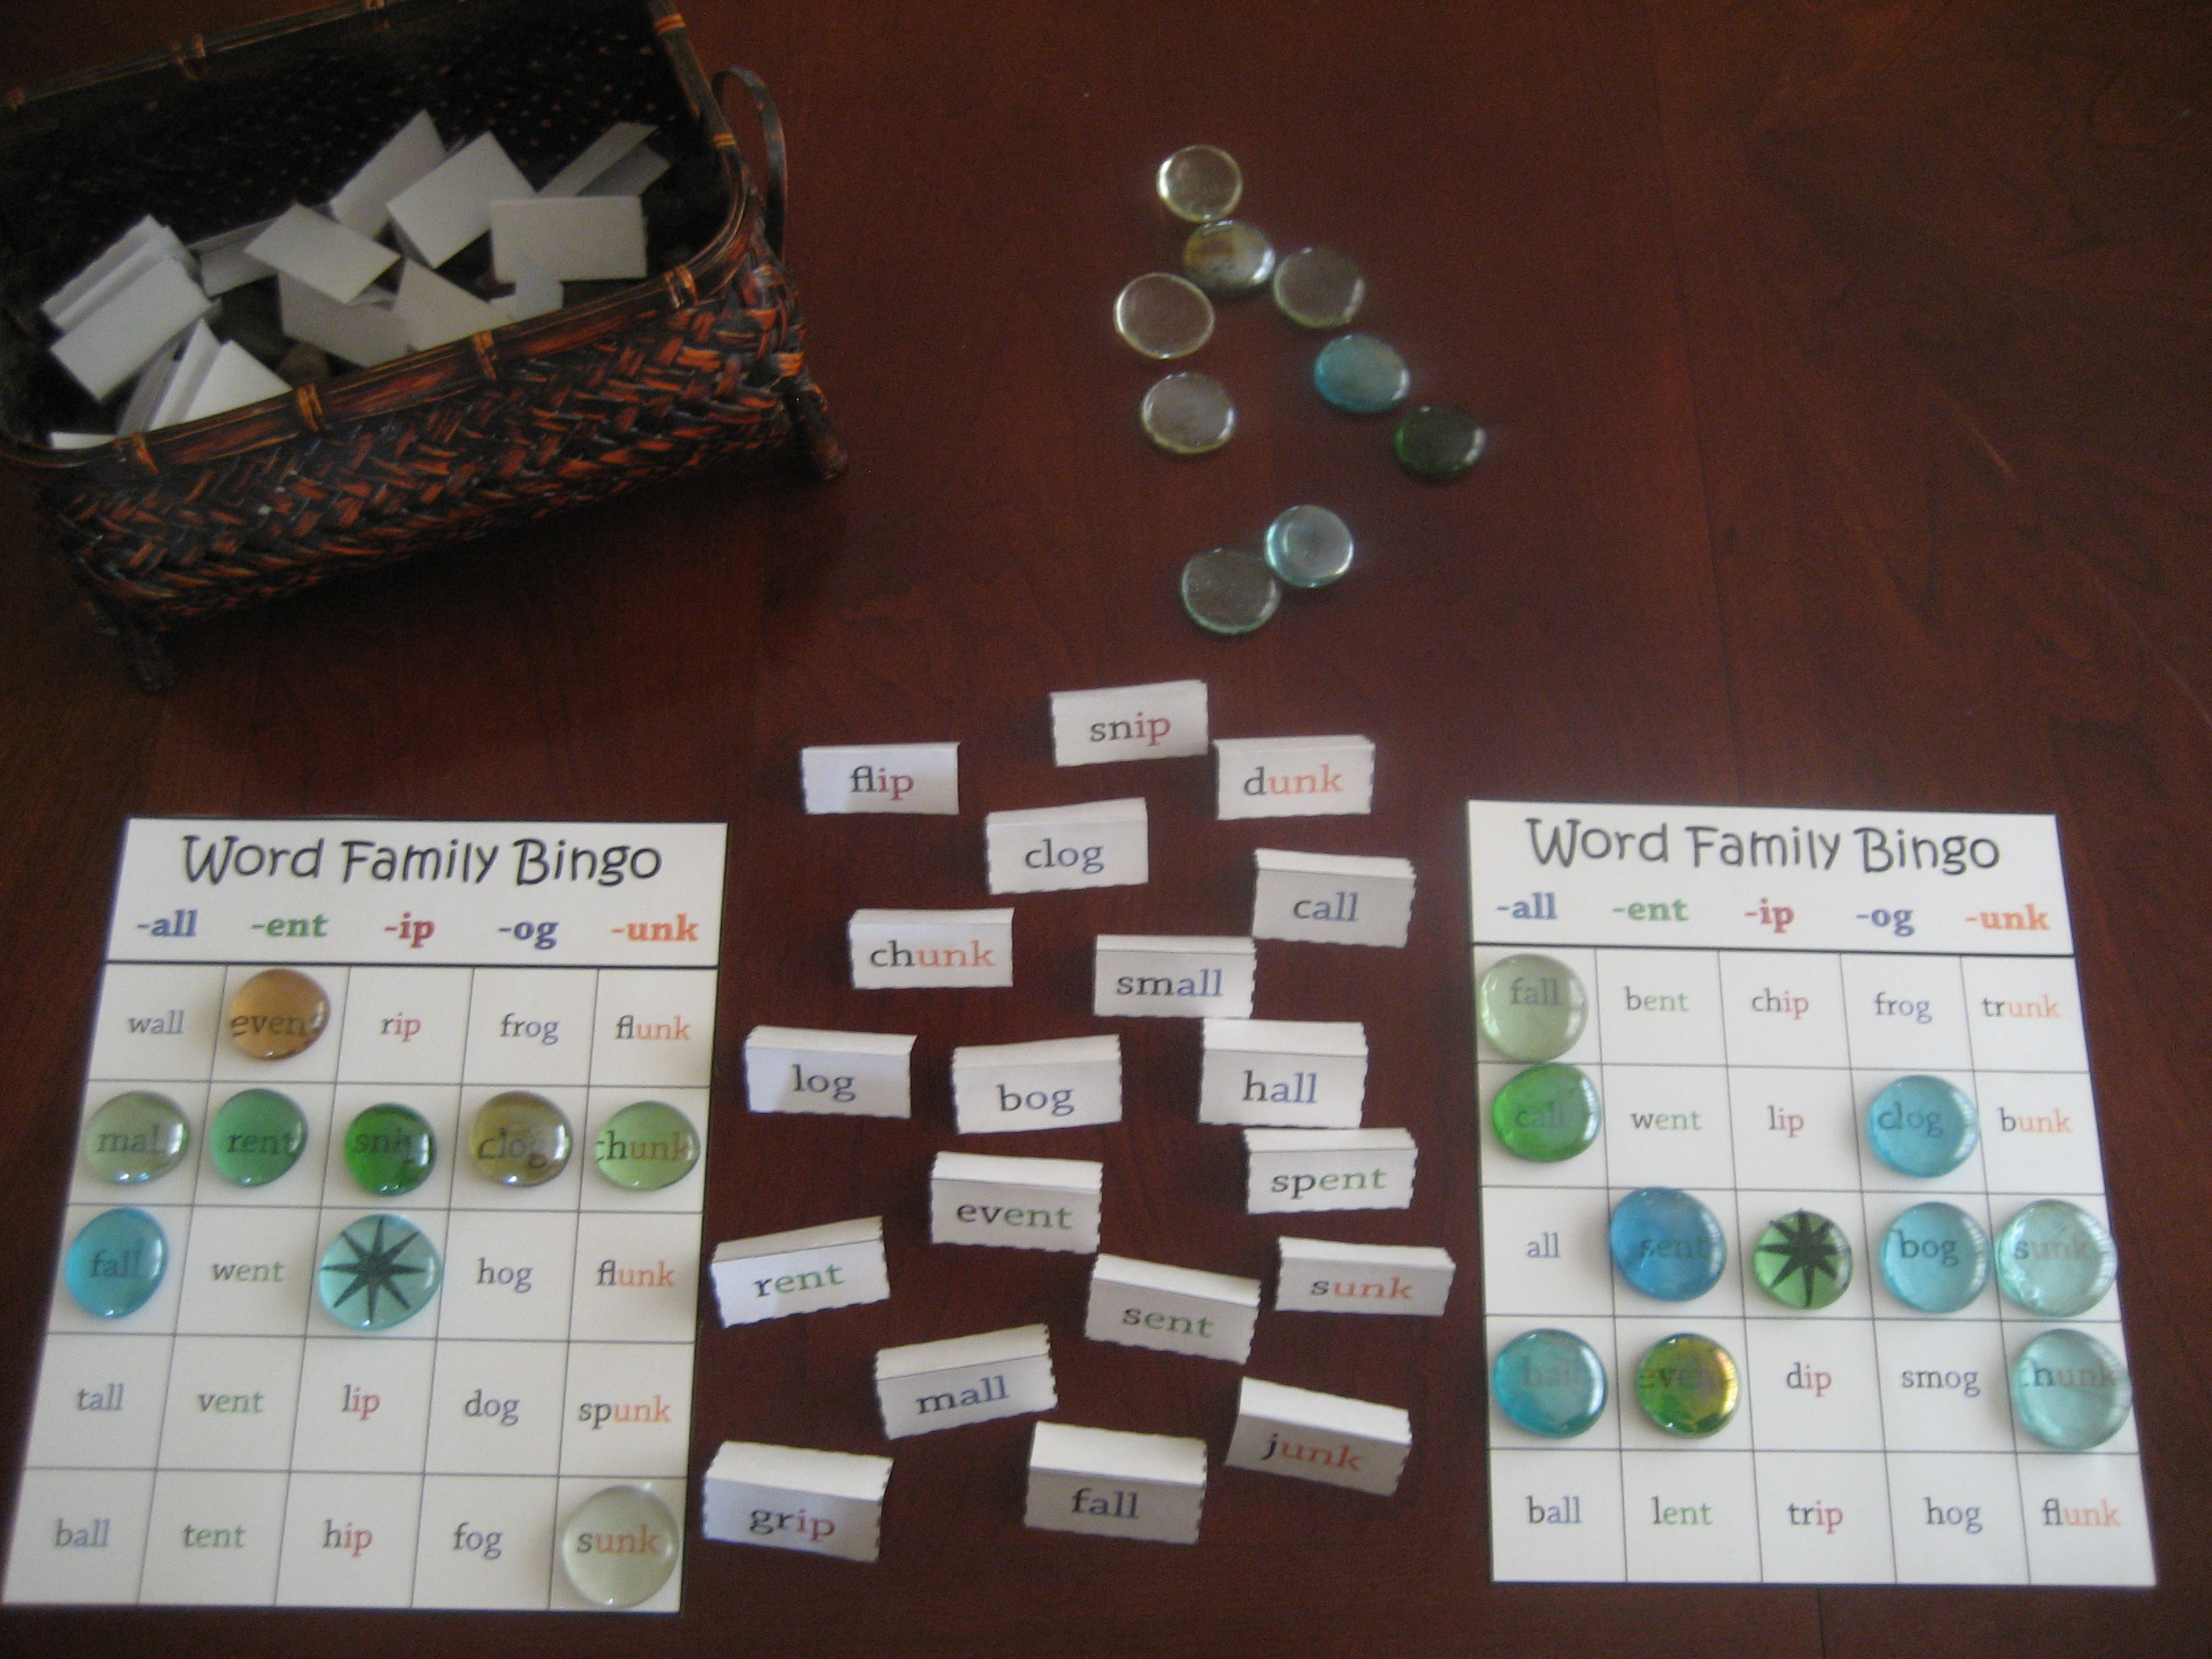 Free Printable Word Family Bingo Game - Free Printable Word Family Games